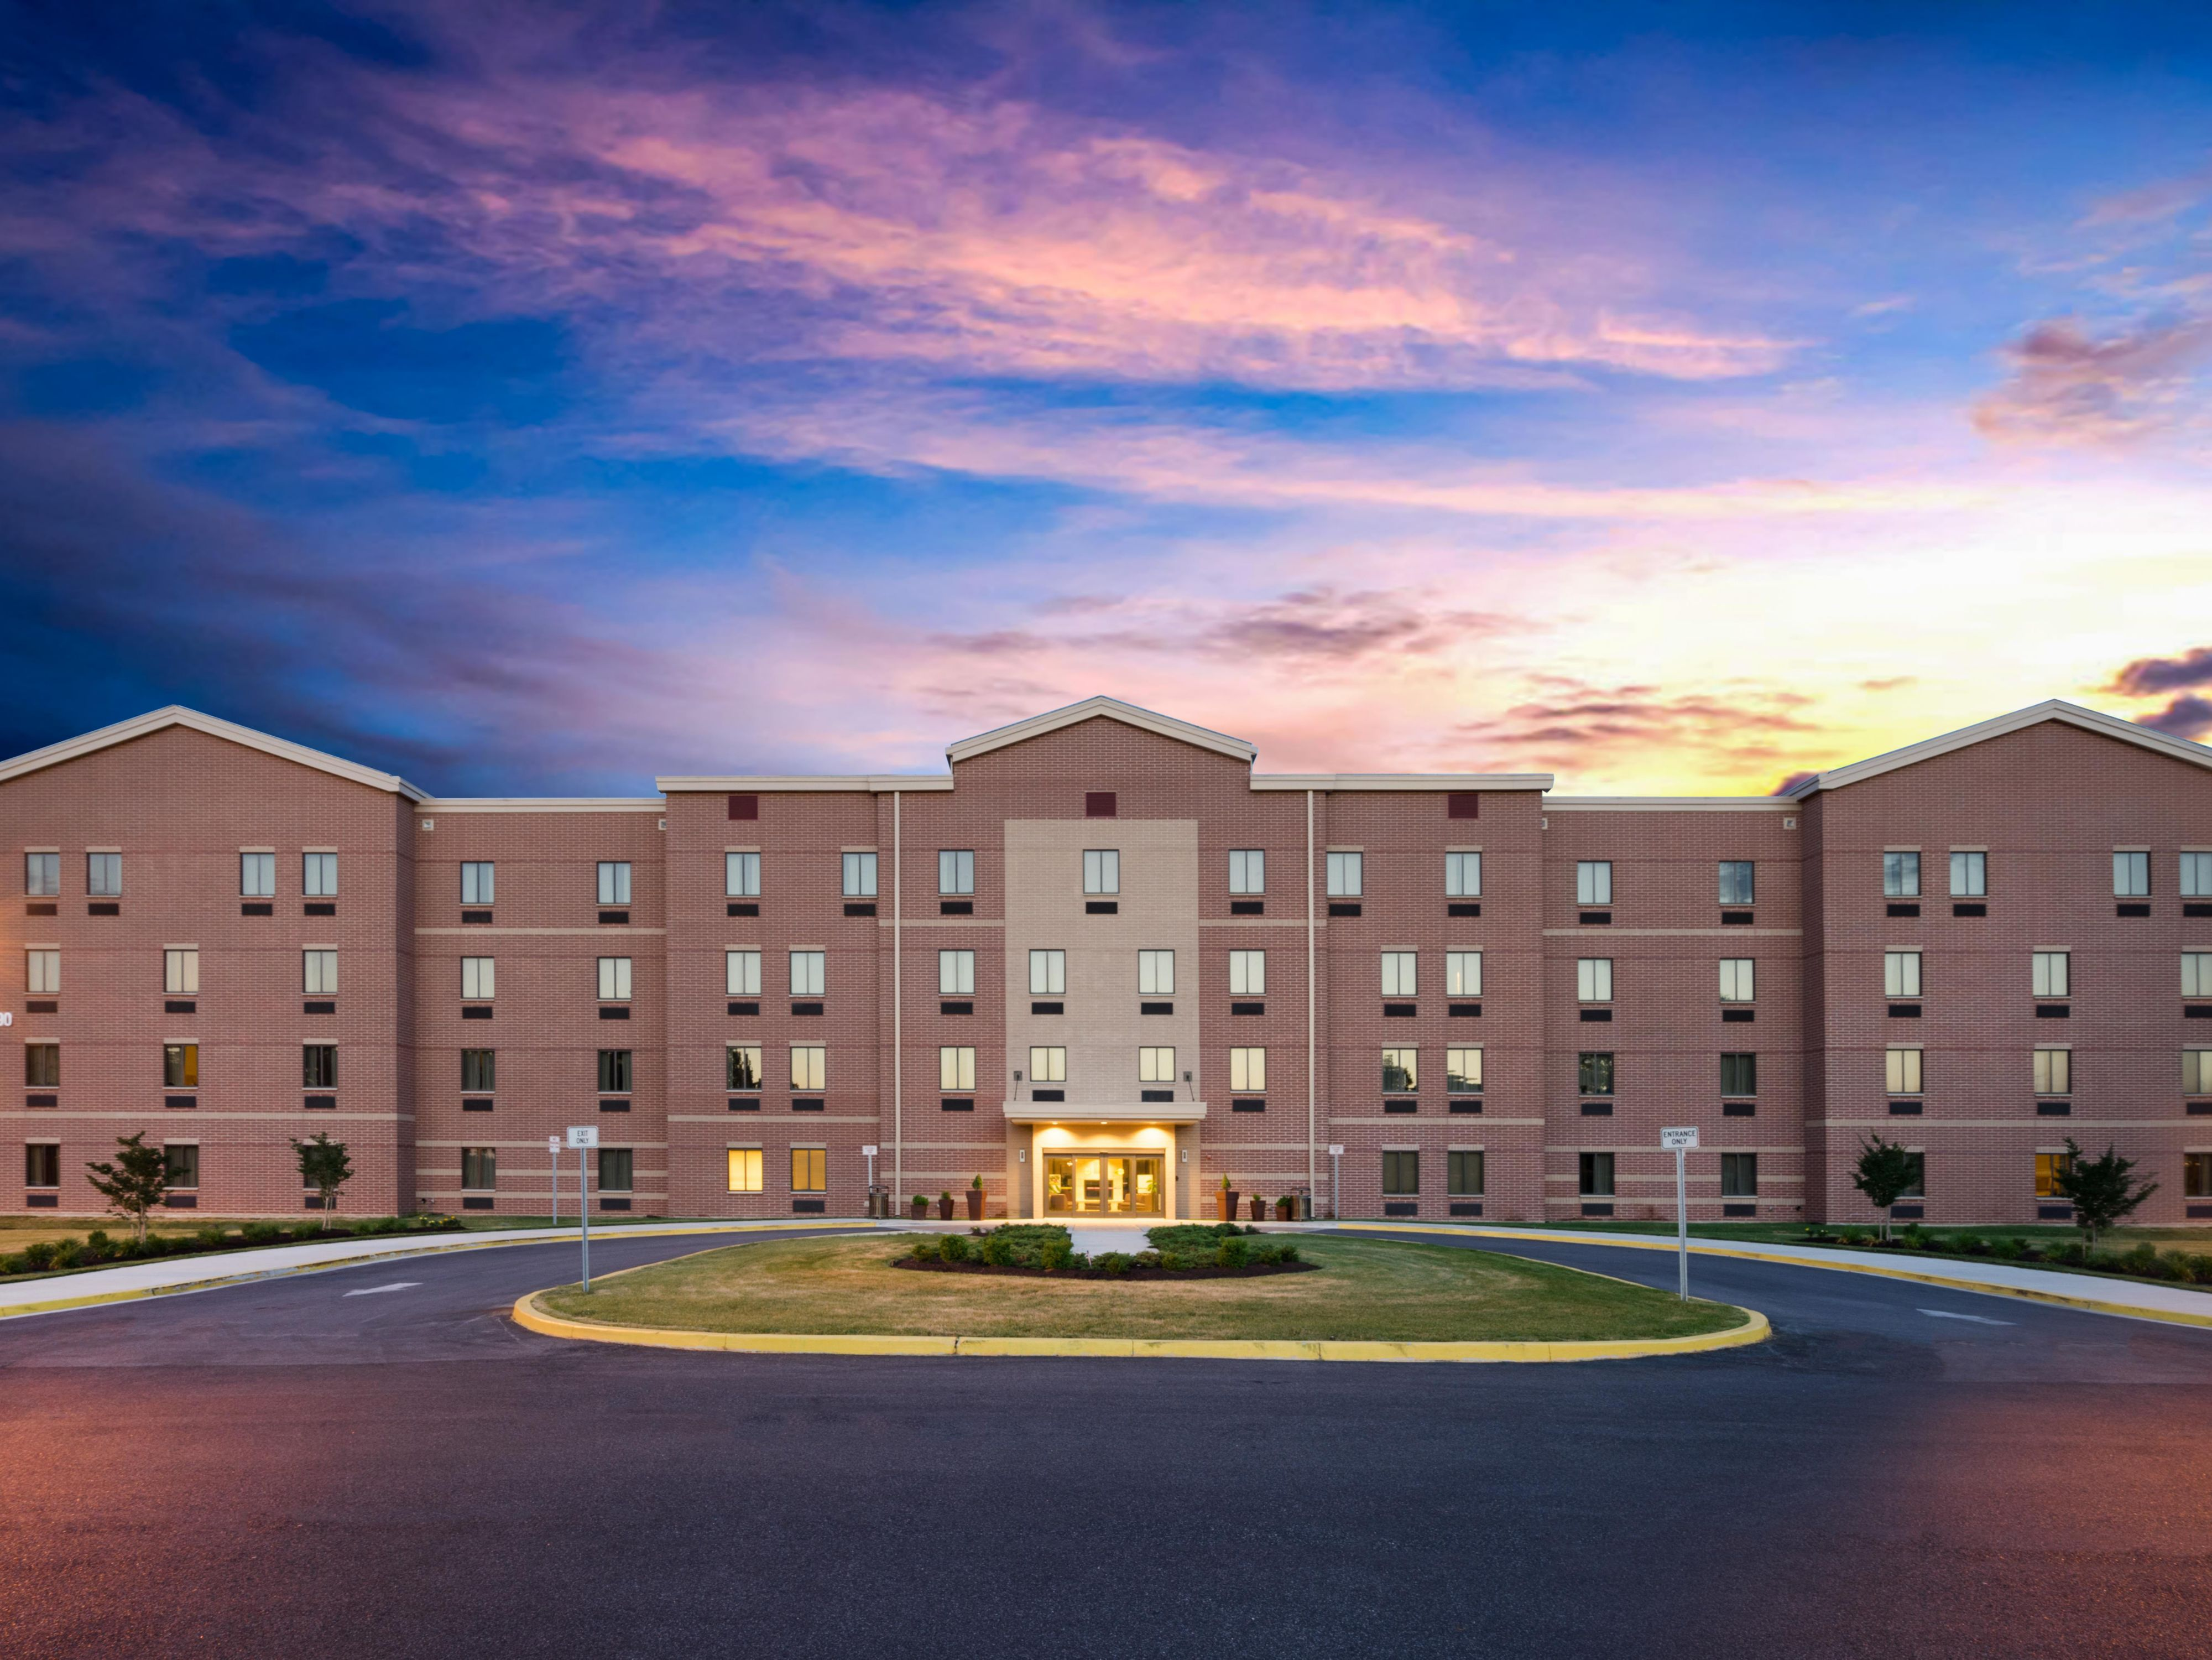 Candlewood Suites Building 4690 On Fort Meade, An IHG Army Hotel